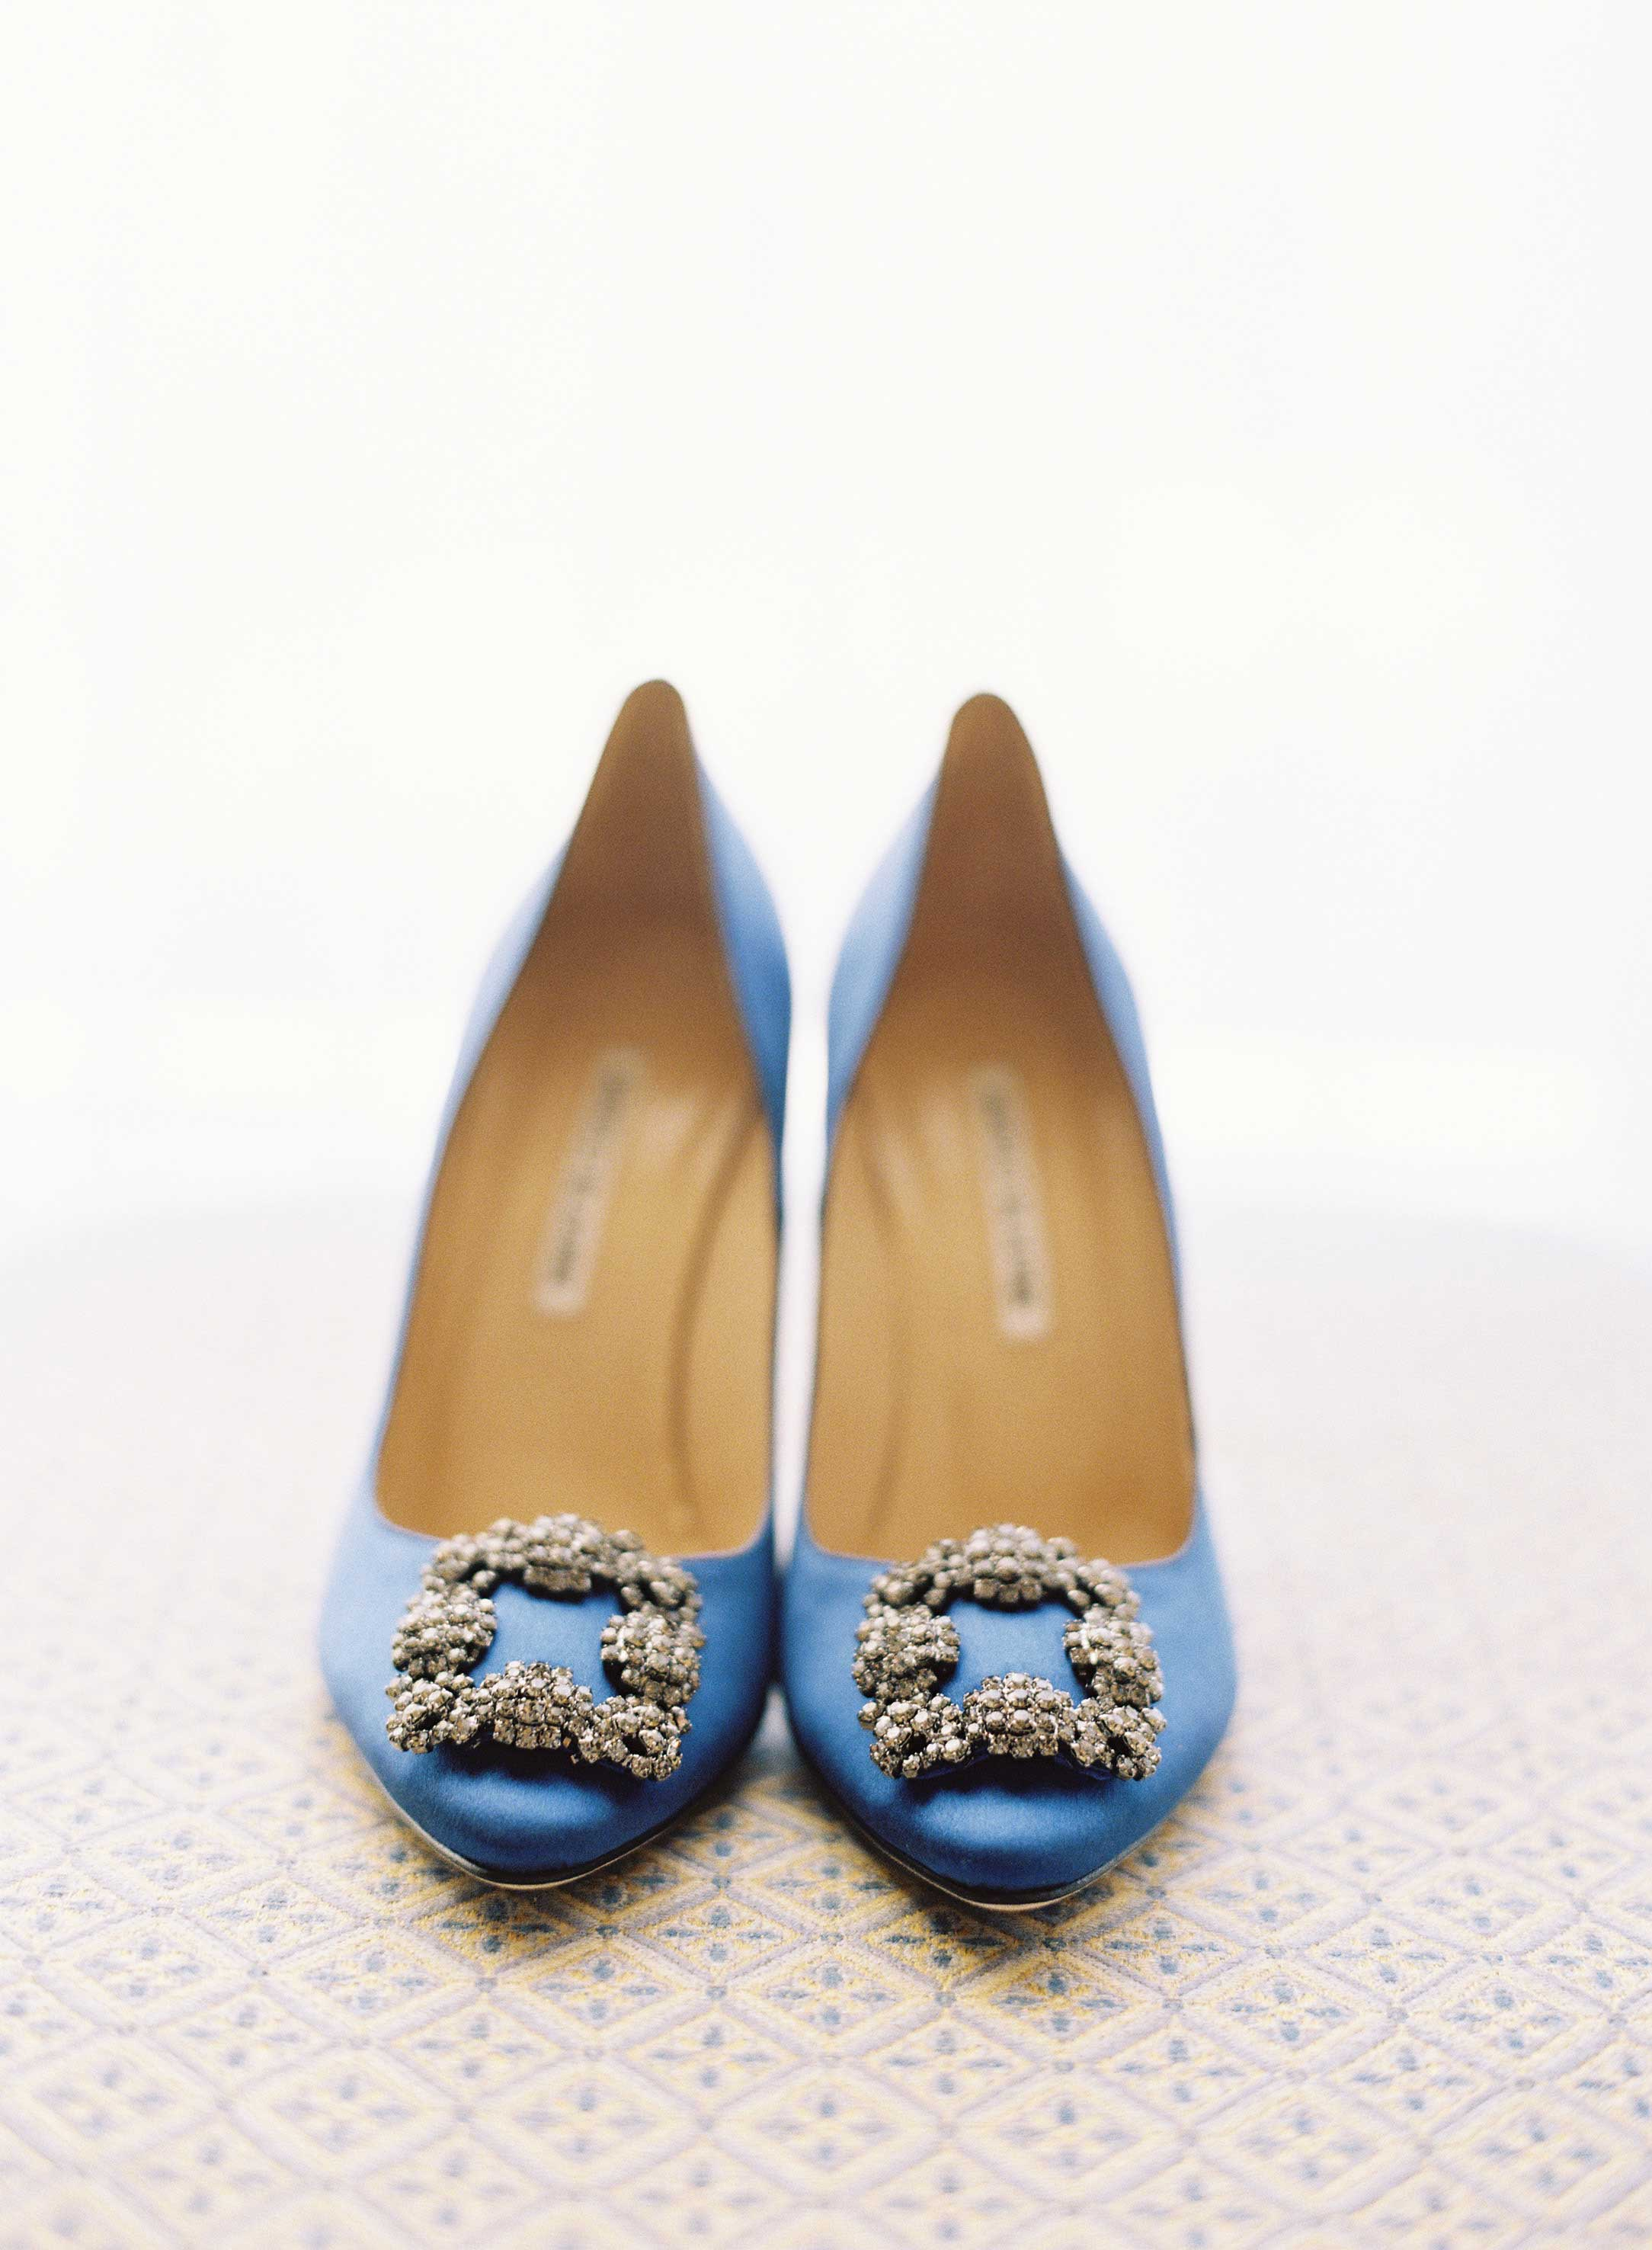 Bright blue royal blue wedding shoes with buckle heels that aren't boring